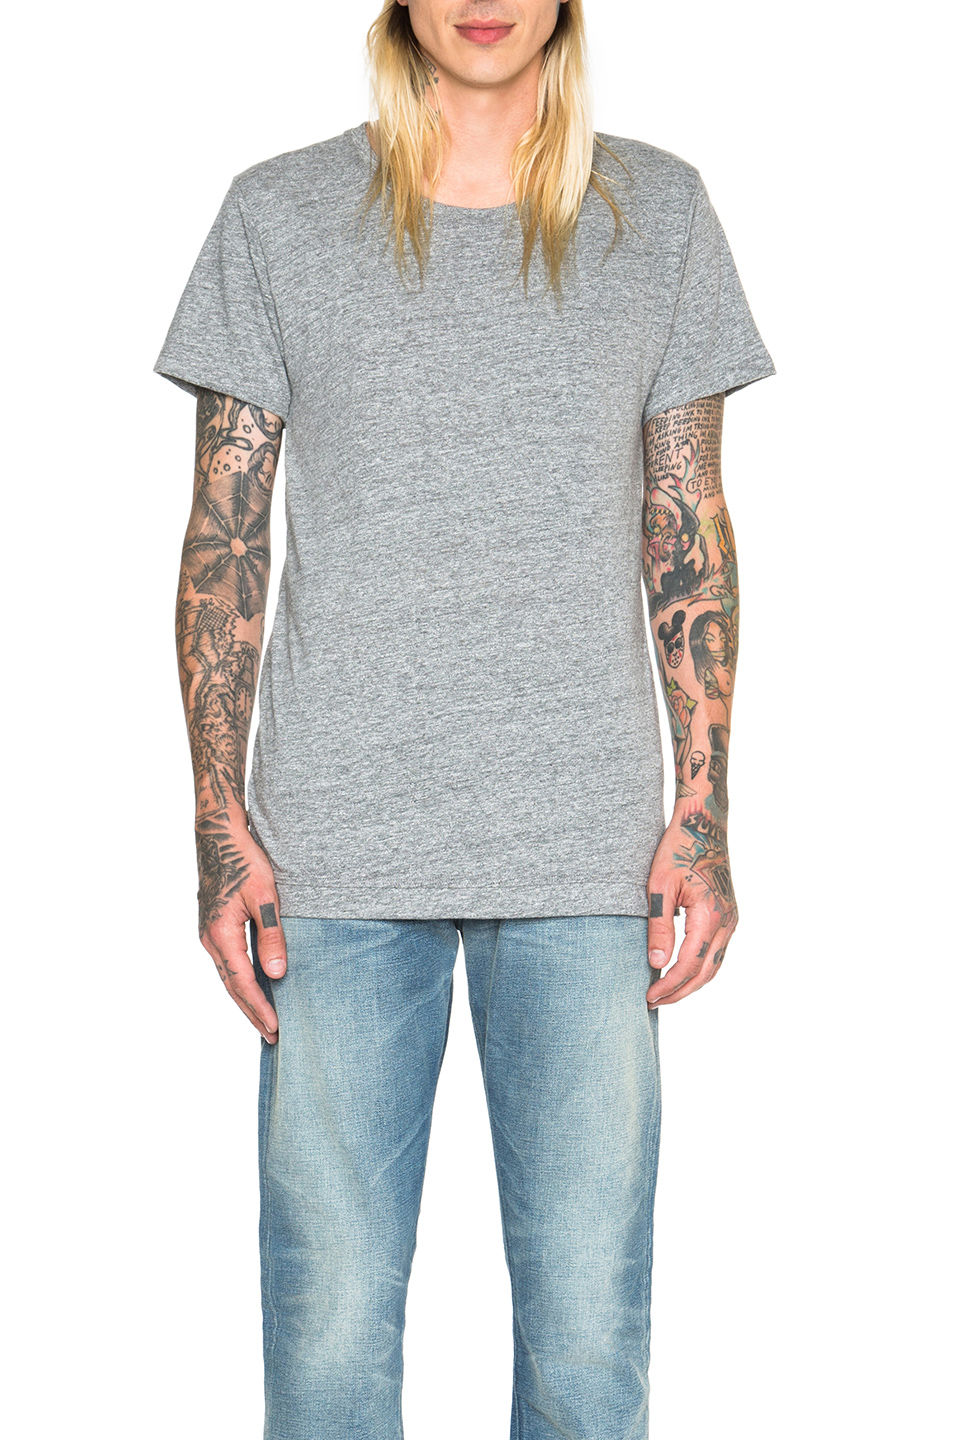 JOHN ELLIOTT Mercer Tee in Gray